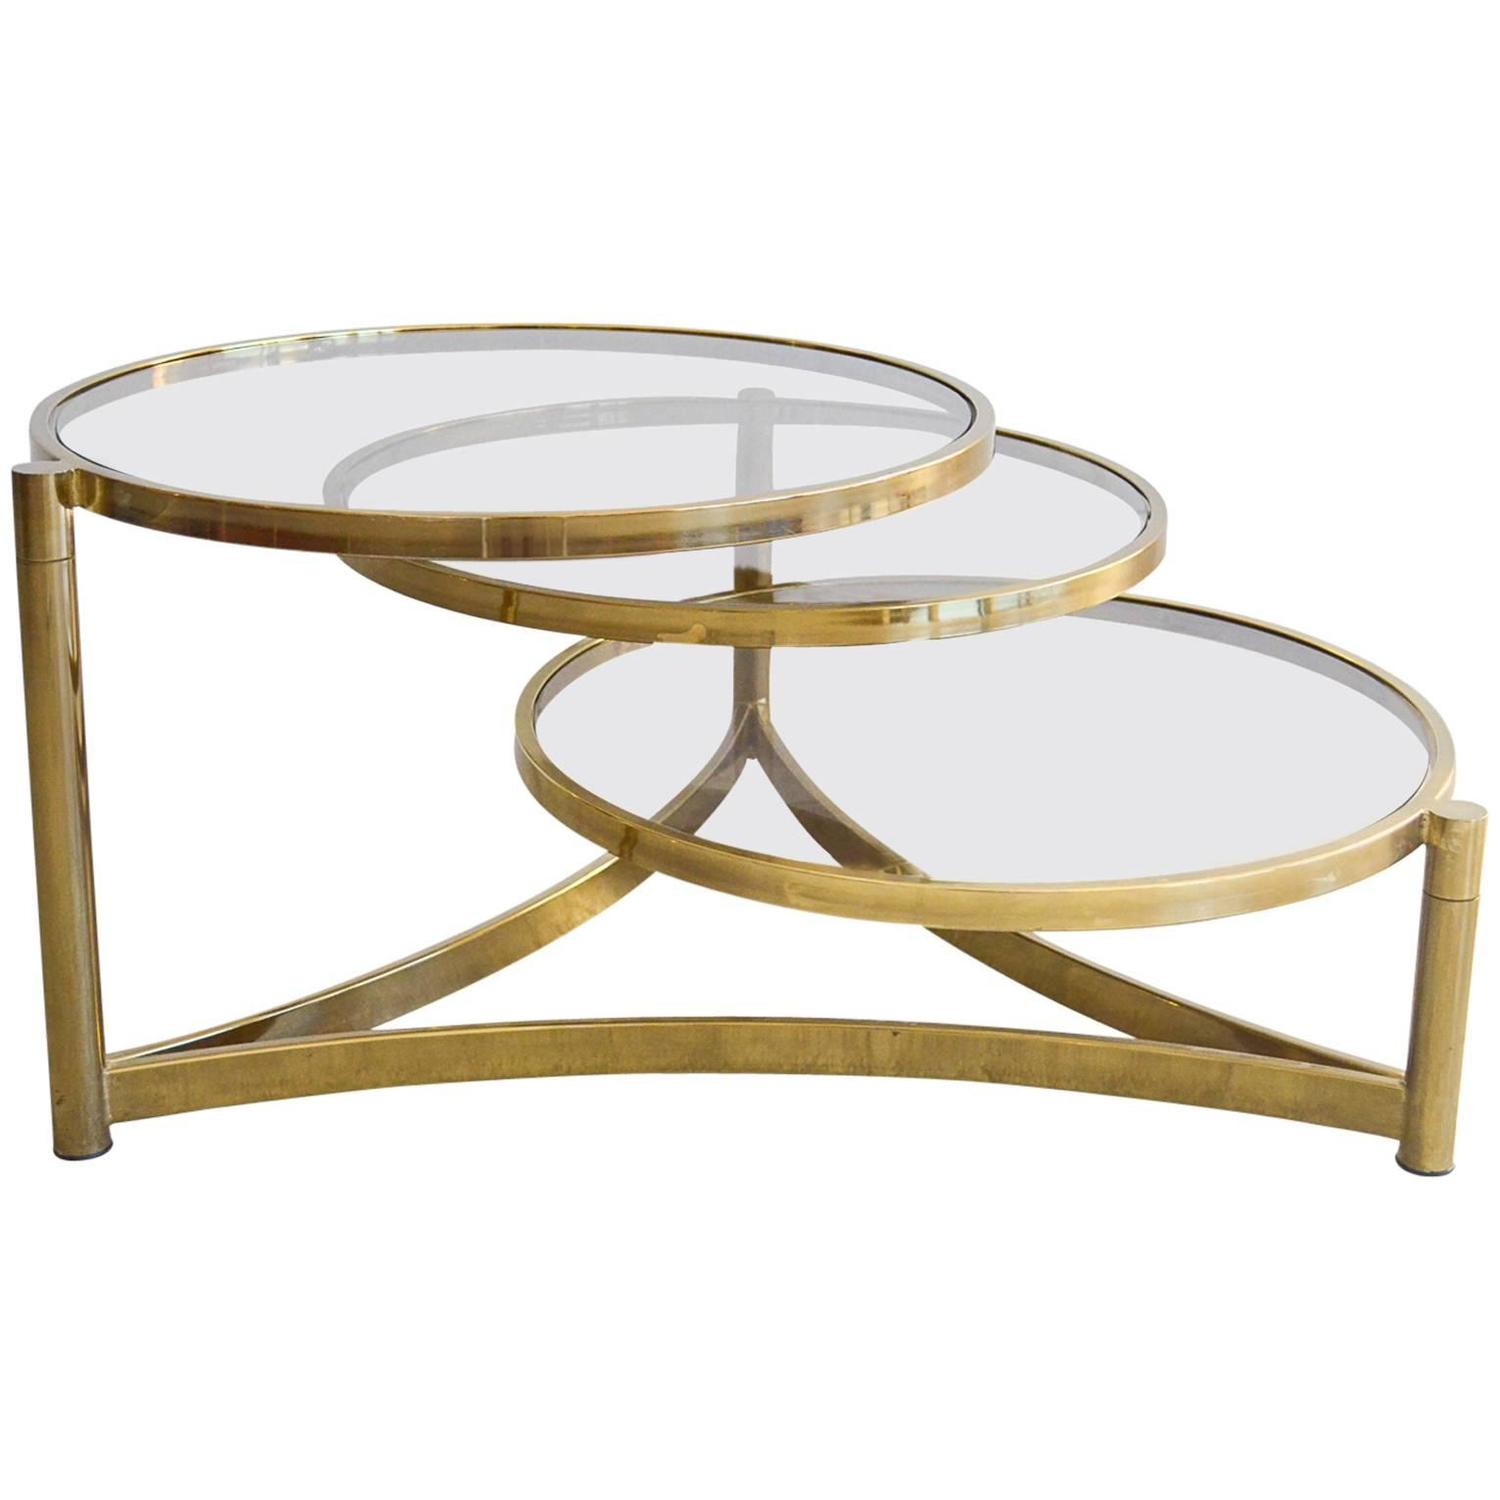 coffee table acrylic and brass glass top accent tables round wood side white marble cool end full size natural edge danish dining tree trunk nightstand waterproof tablecloth diy